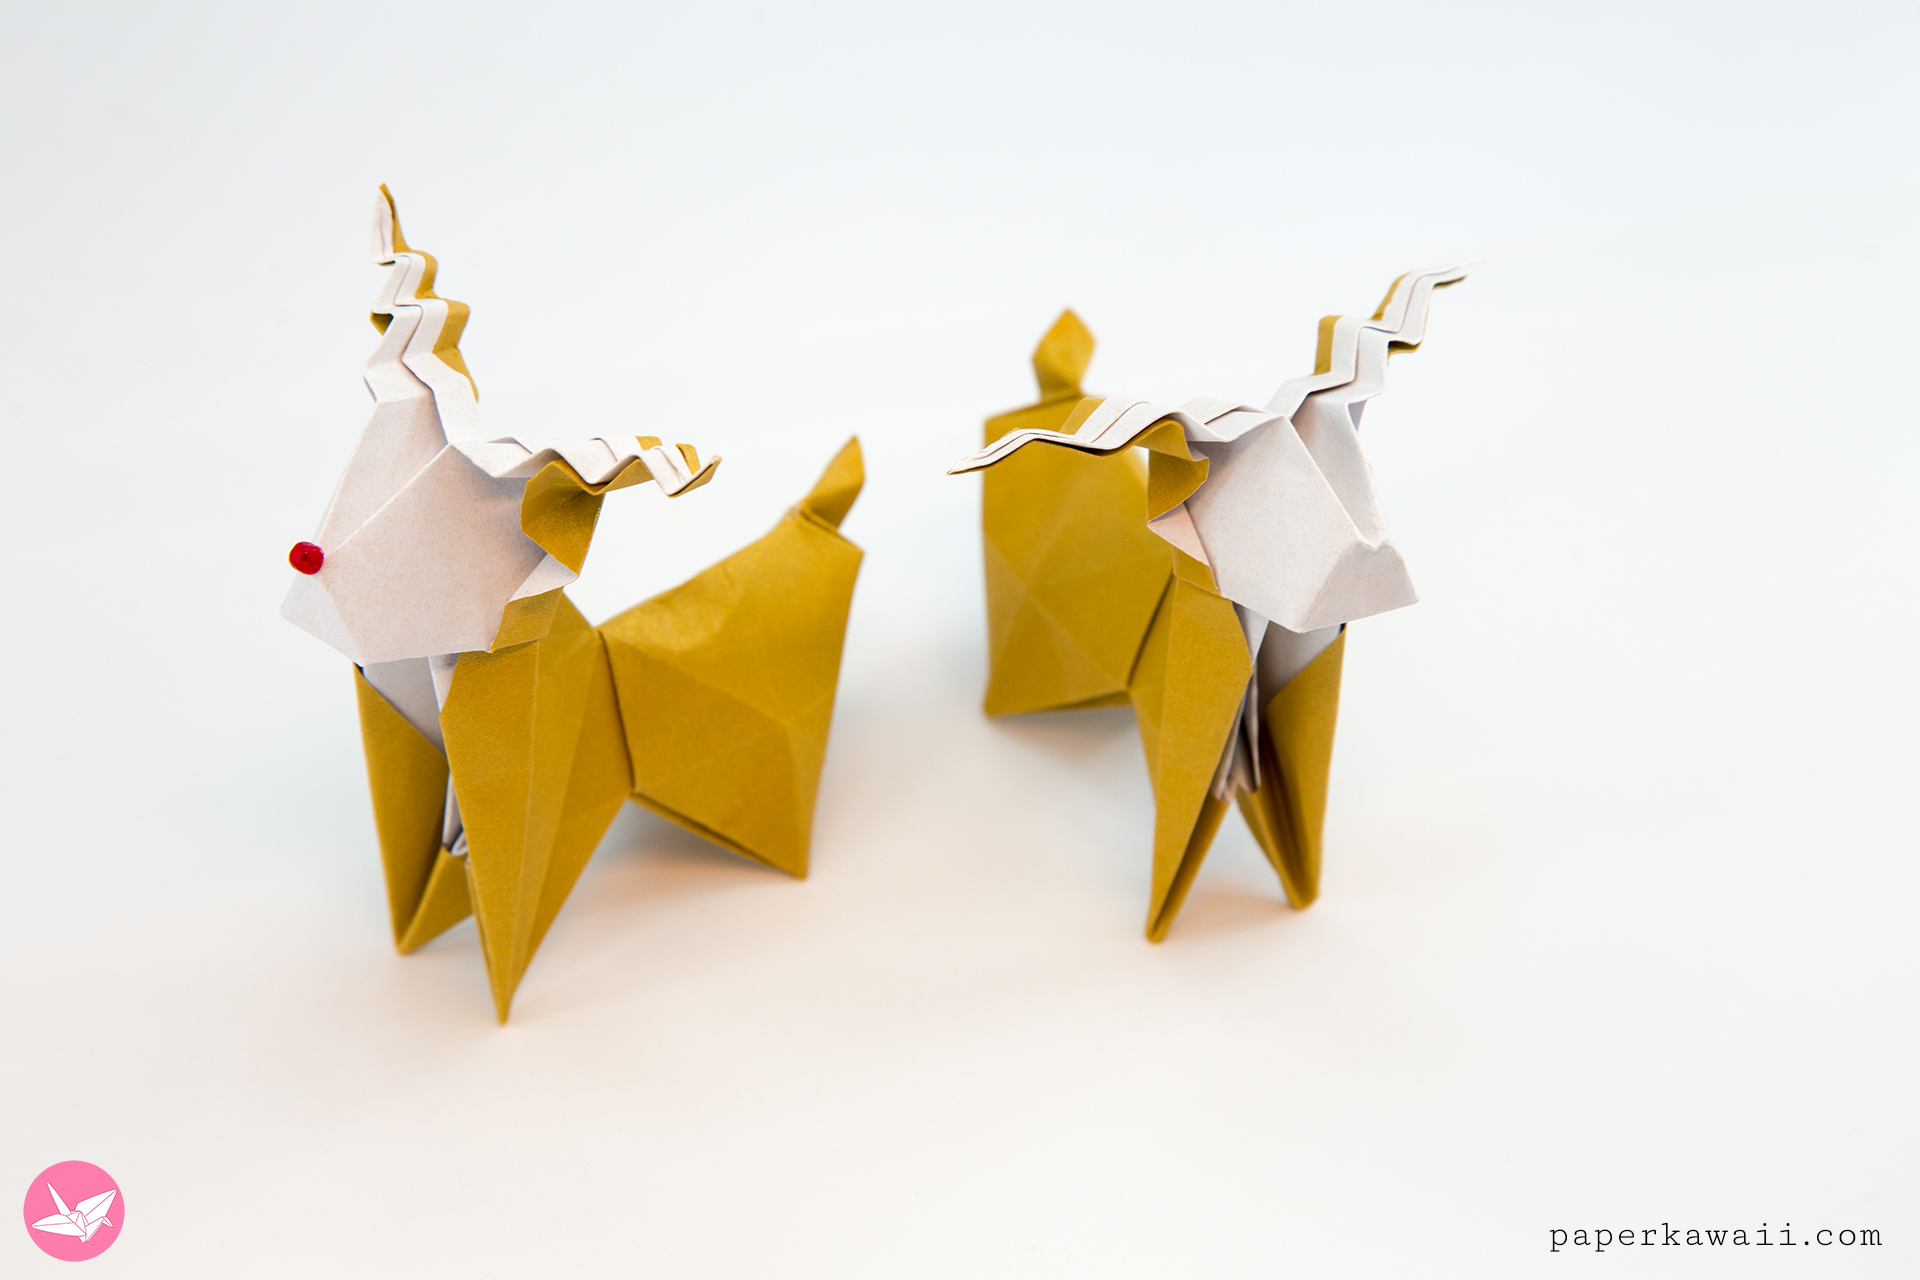 Origami Reindeer Tutorial - Make a cute paper Rudolf! via @paper_kawaii